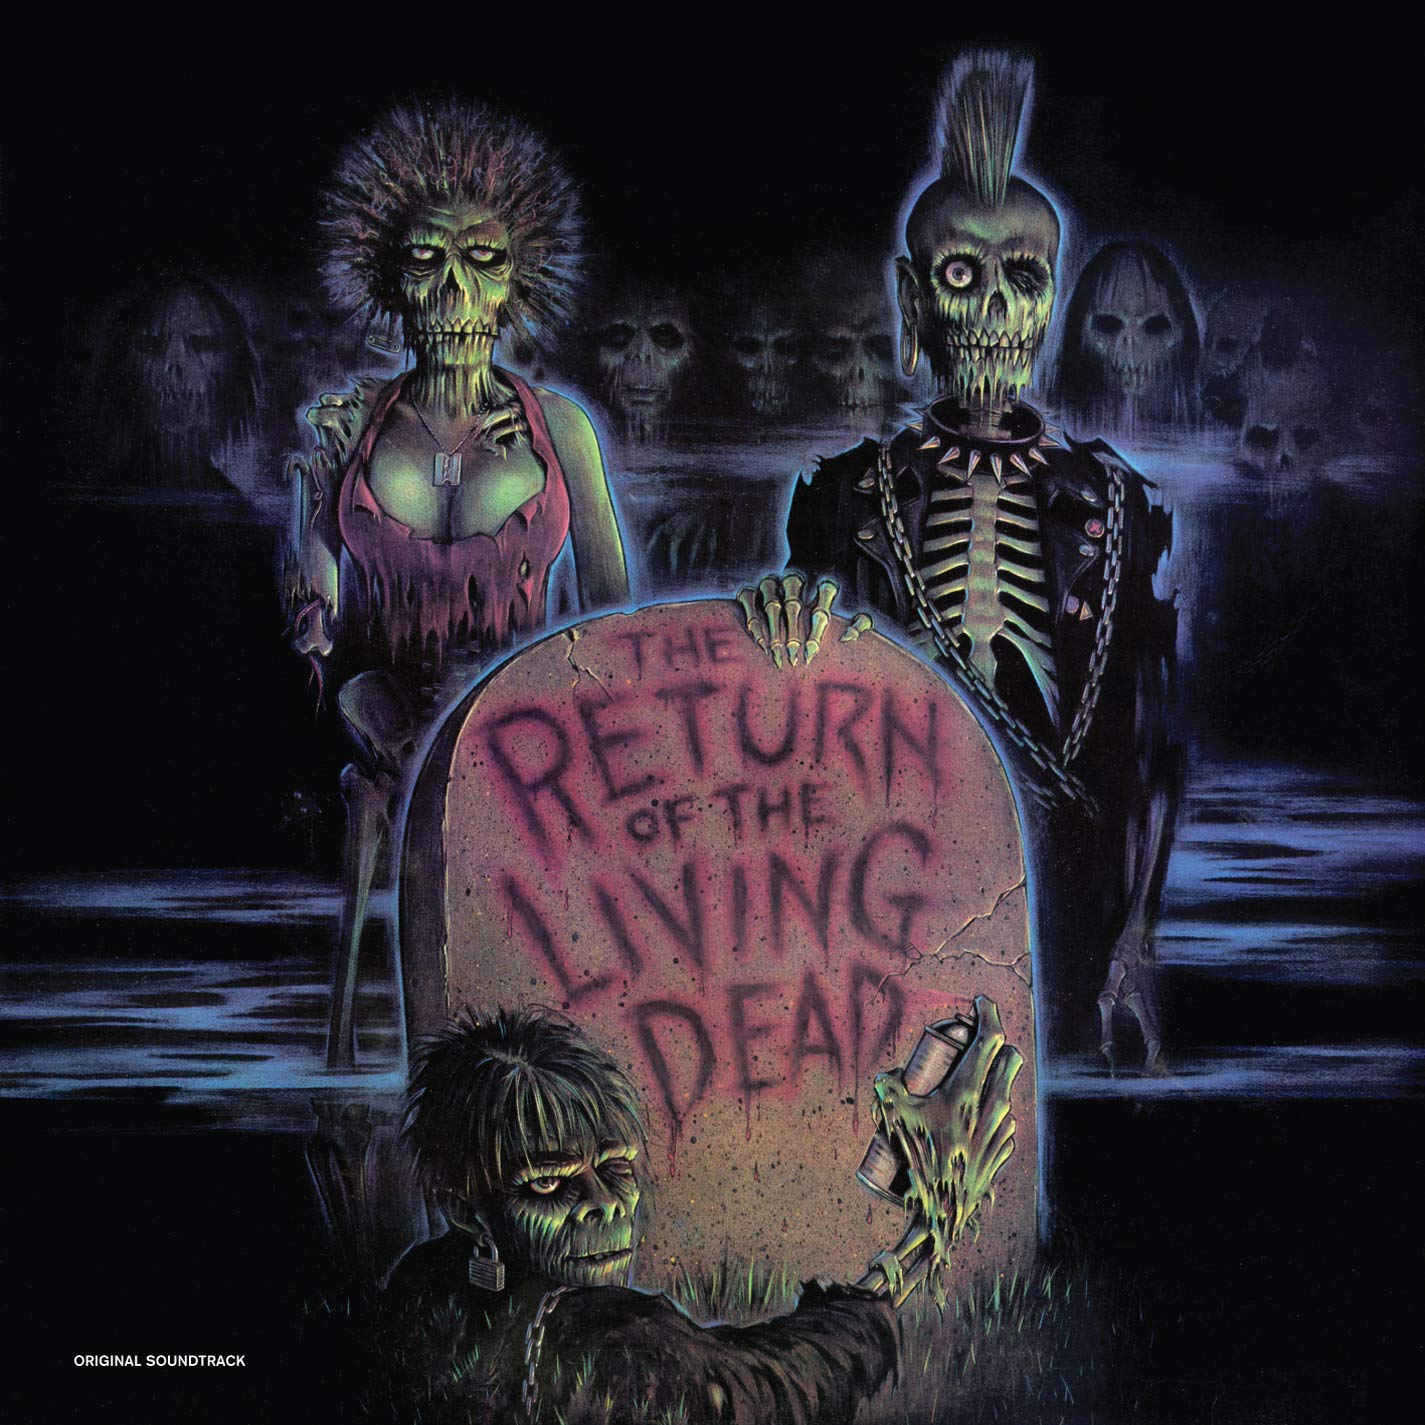 Vinilo : VARIOUS ARTISTS - Return Of The Living Dead (Limited Edition, Colored Vinyl)